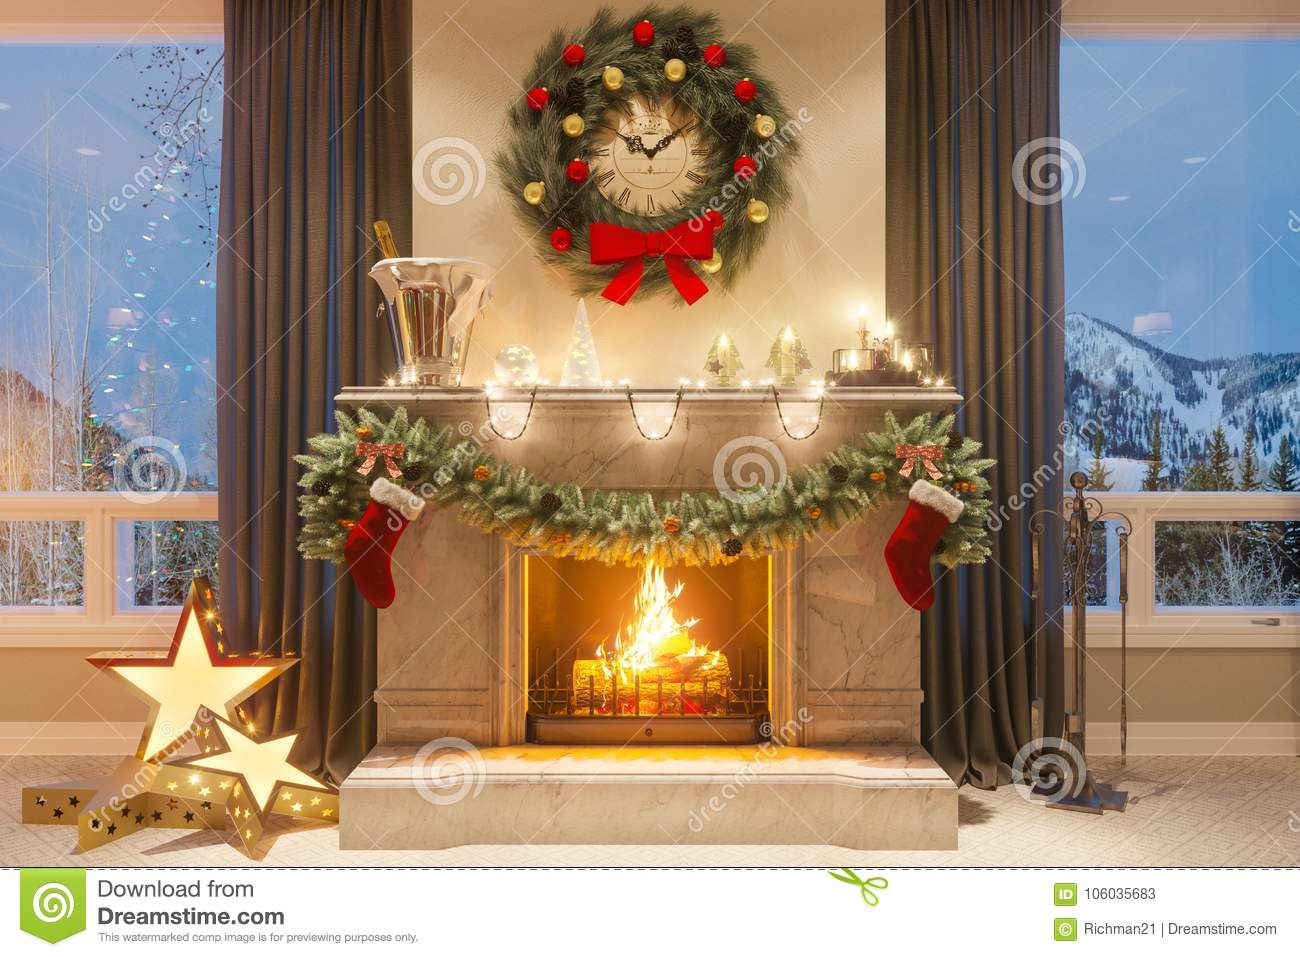 3d illustration of a Christmas interior with a fireplace and gifts. An image for a postcard or a poster.